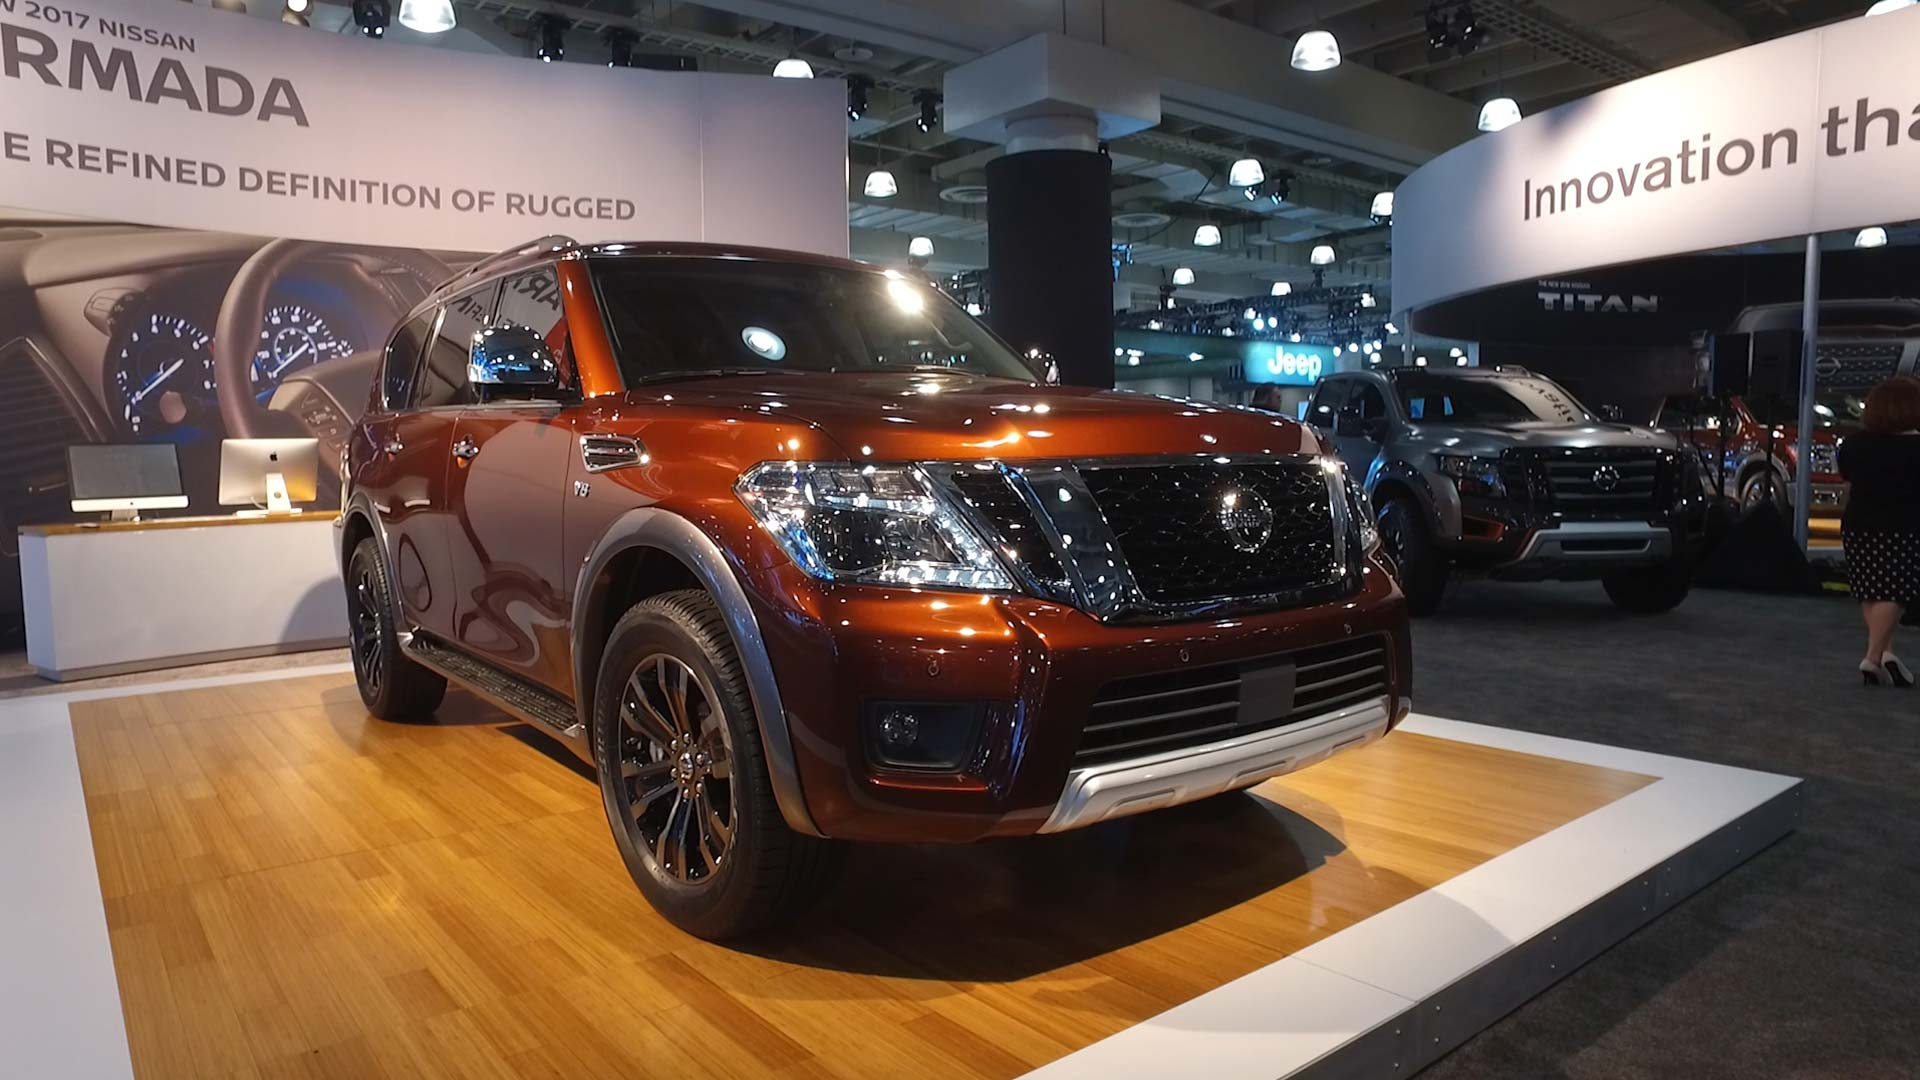 Nissan Armada Towing Capacity >> Nissan Armada Redesign Moves Upscale